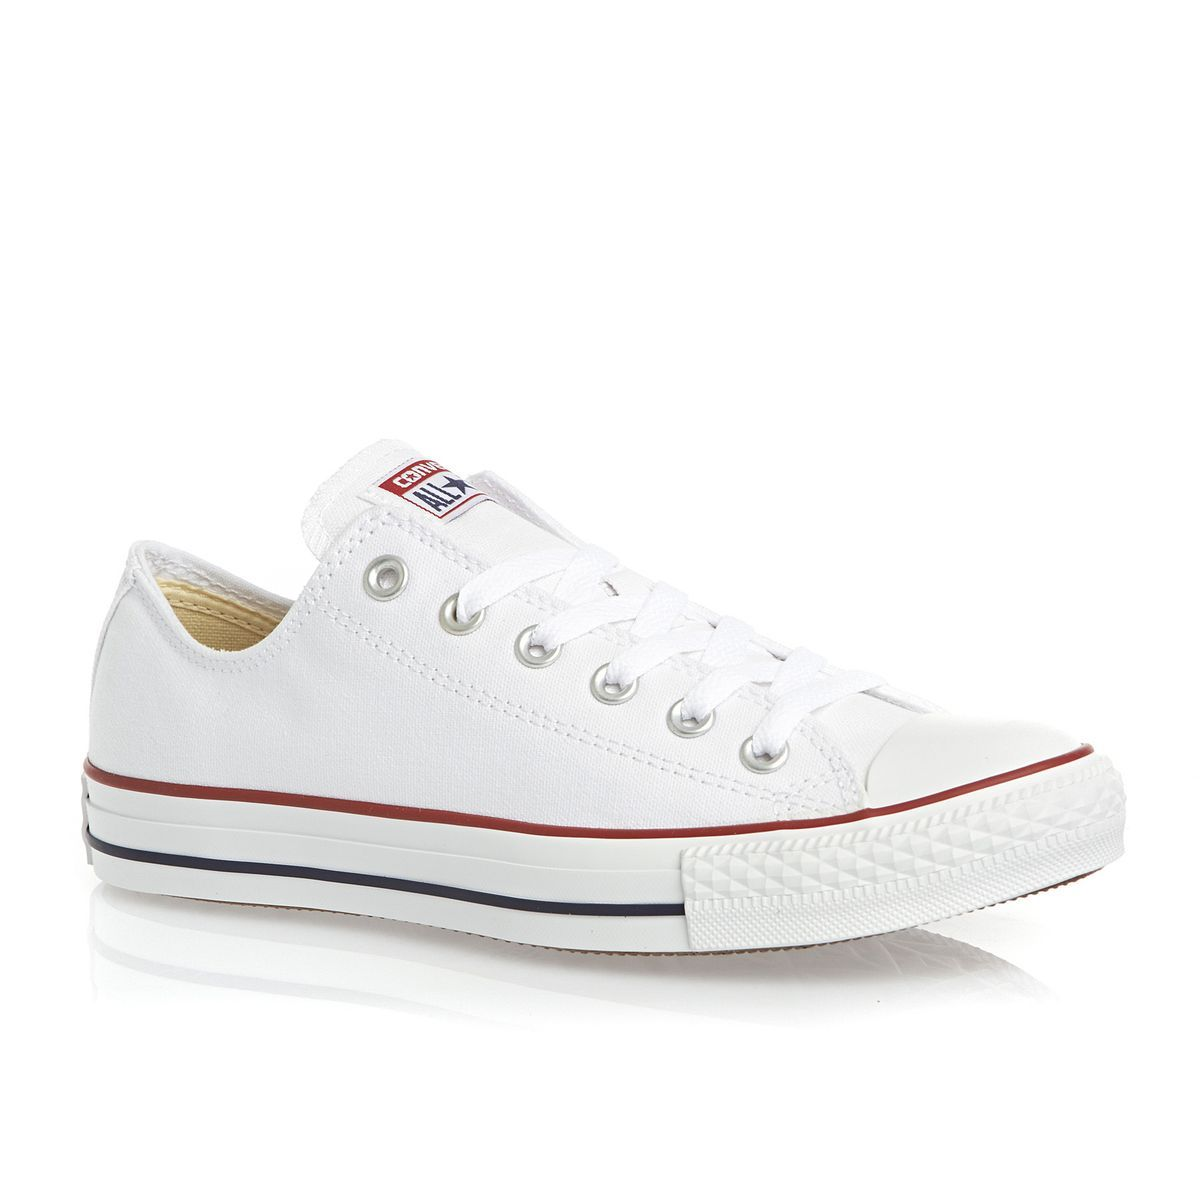 37495c89124e Buy Converse All Star Ox Shoes Optical White with great prices